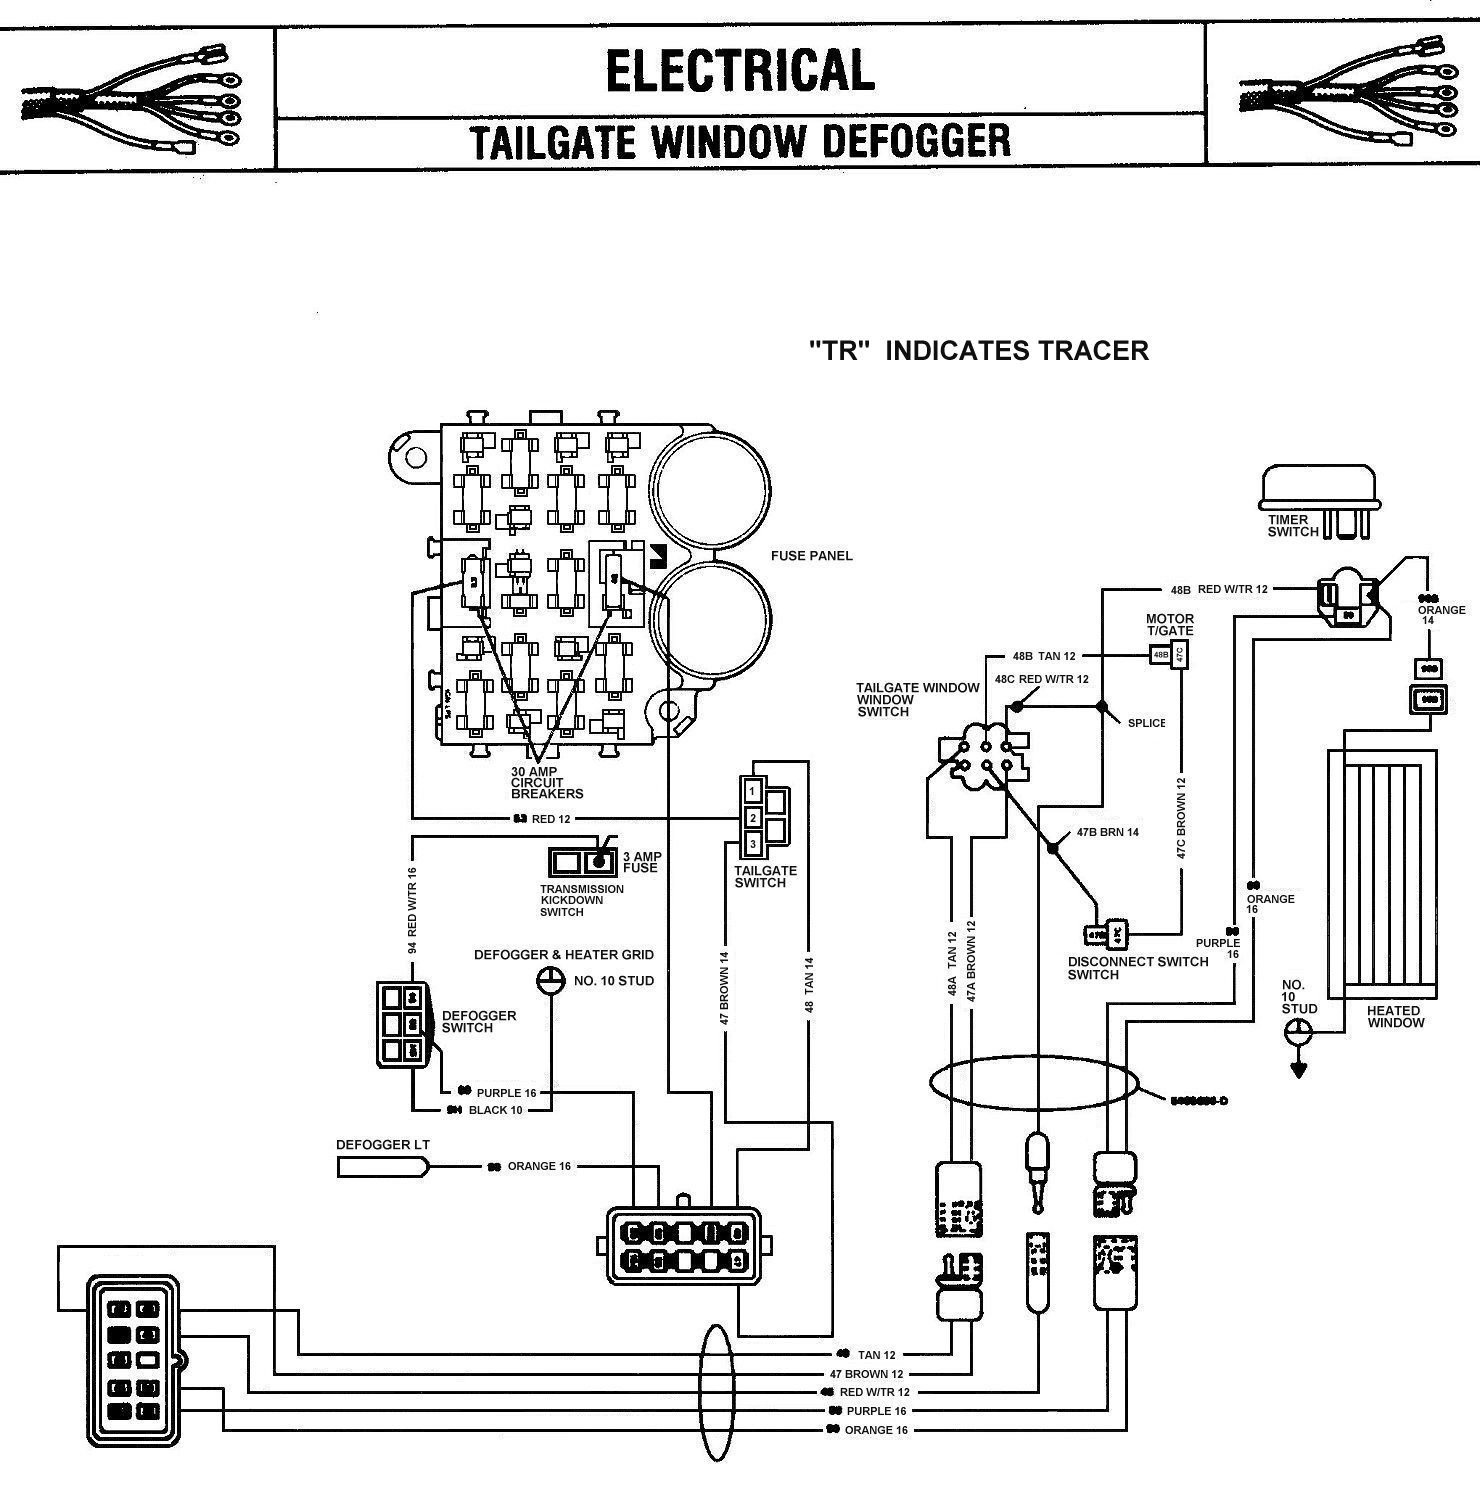 1983 wagoneer fuse box   22 wiring diagram images